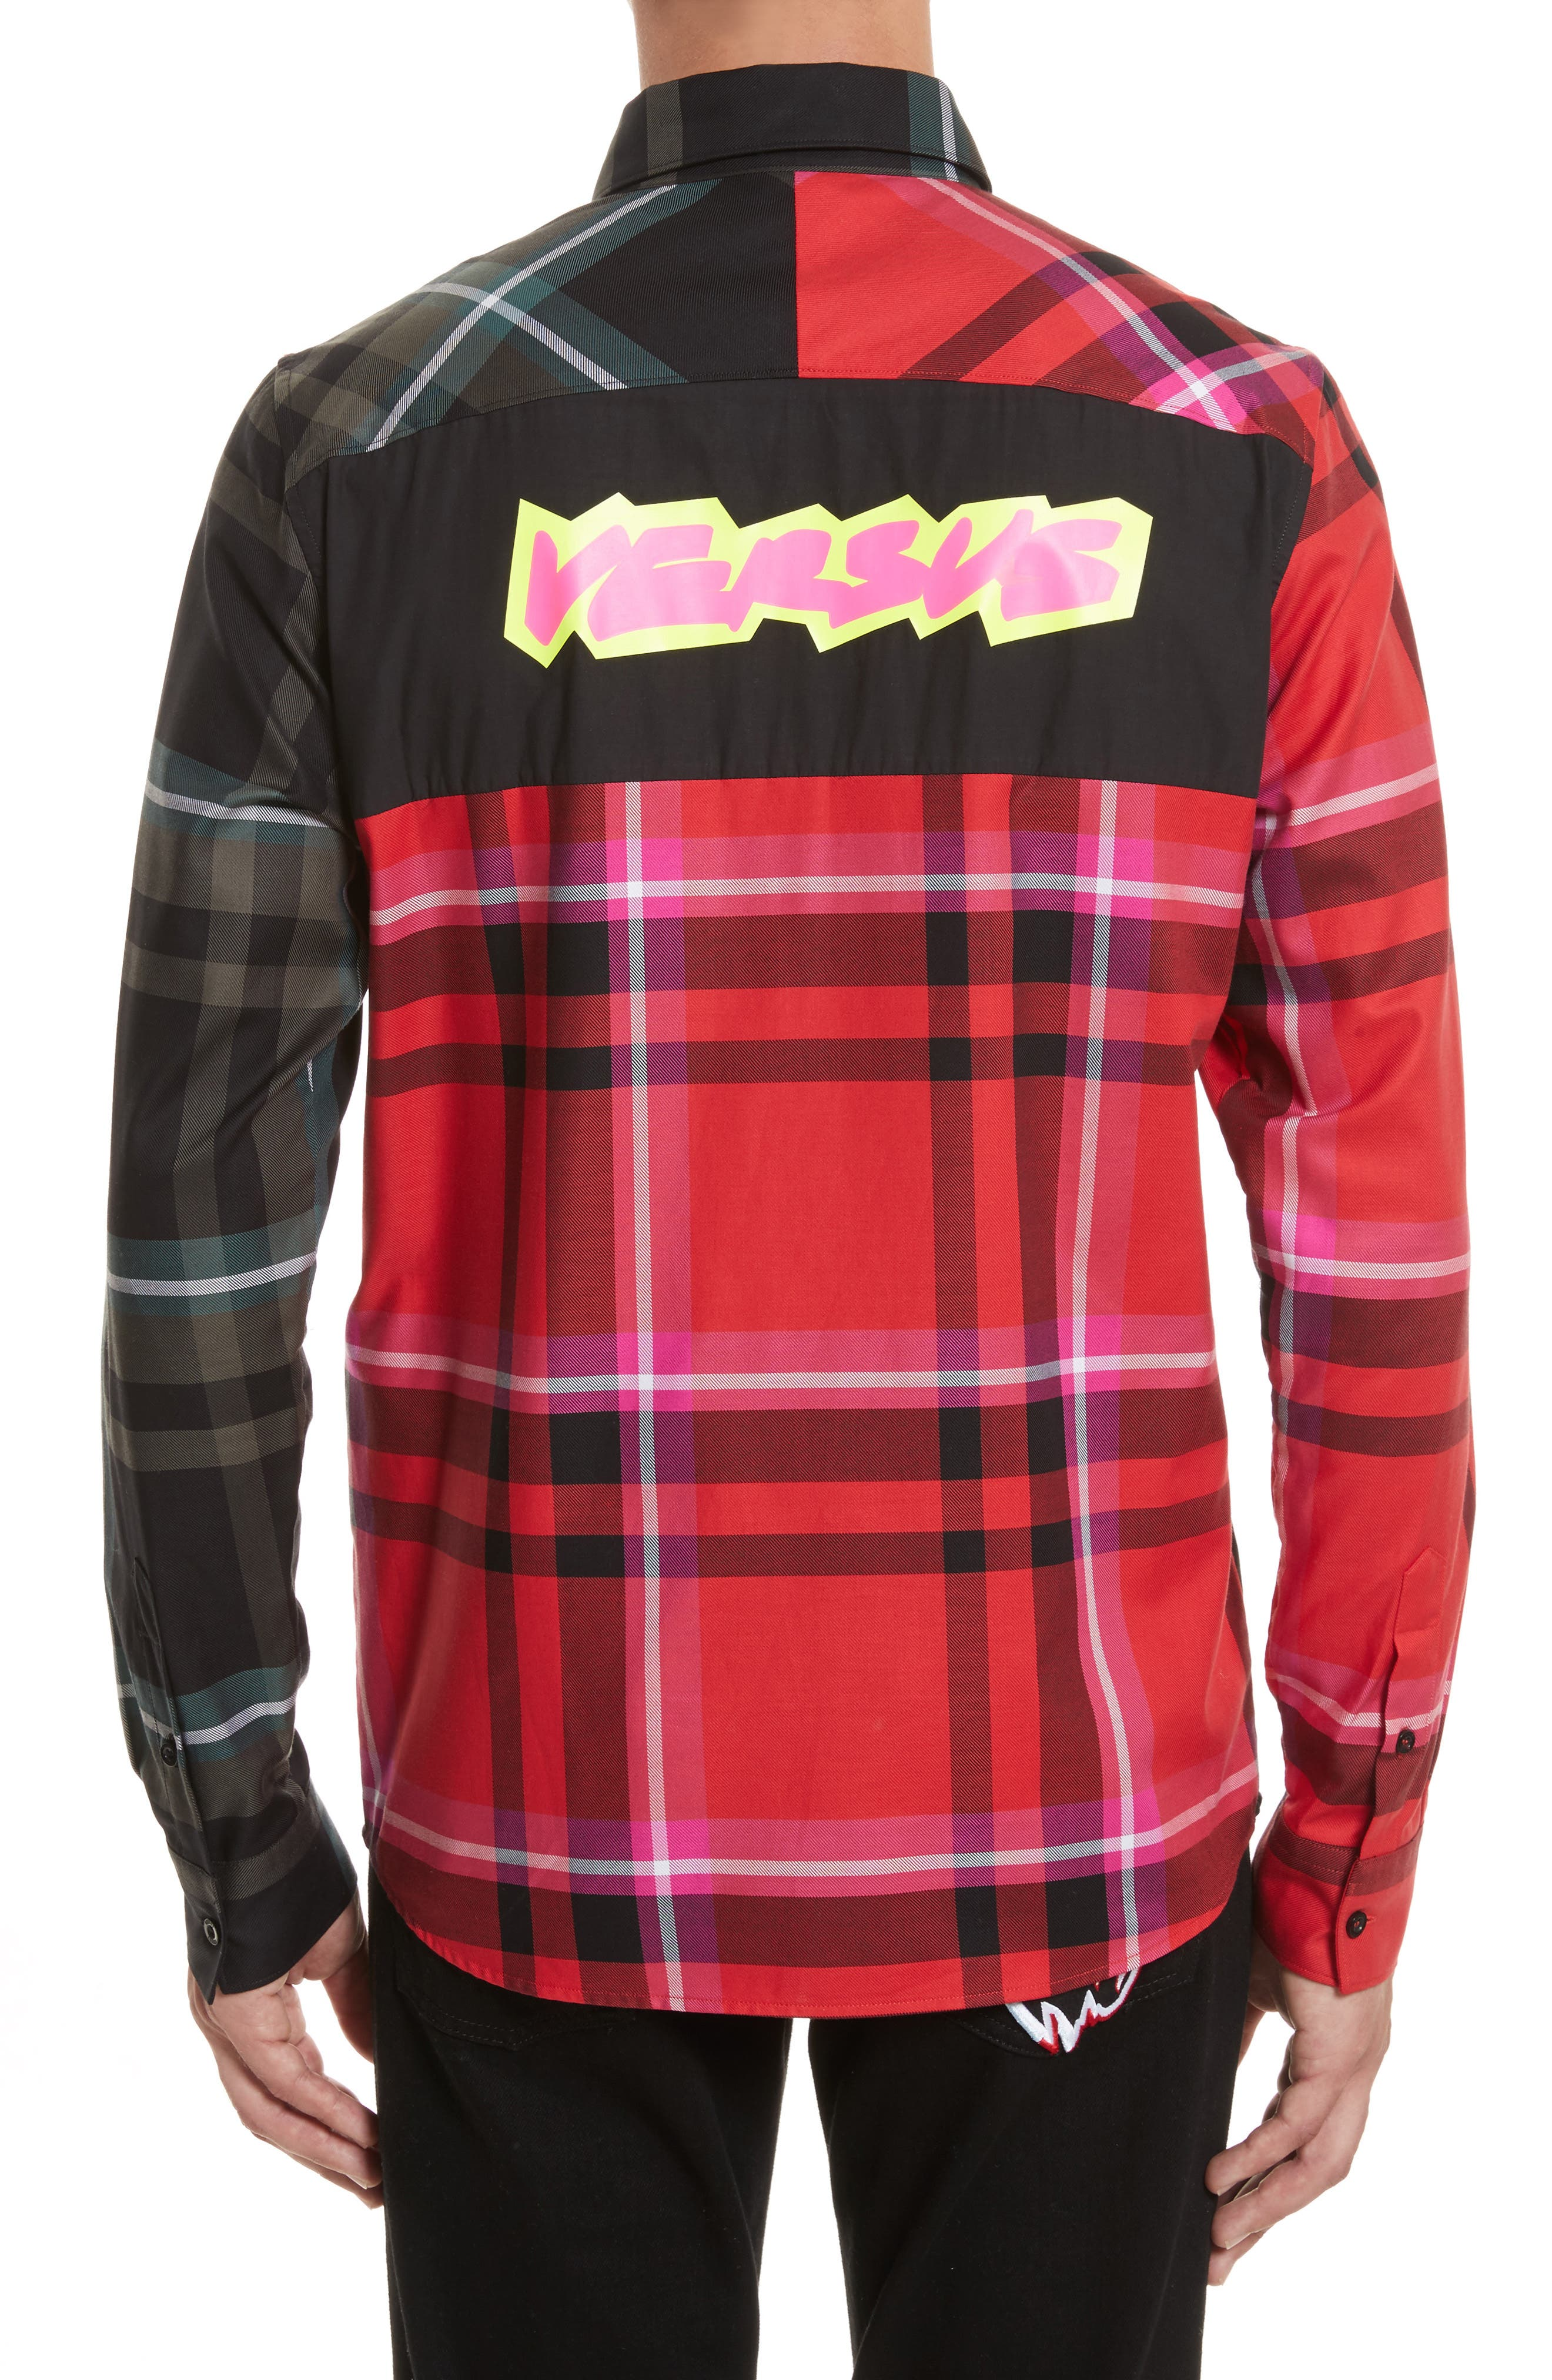 VERSUS by Versace Plaid Woven Shirt,                             Alternate thumbnail 2, color,                             Red Multi